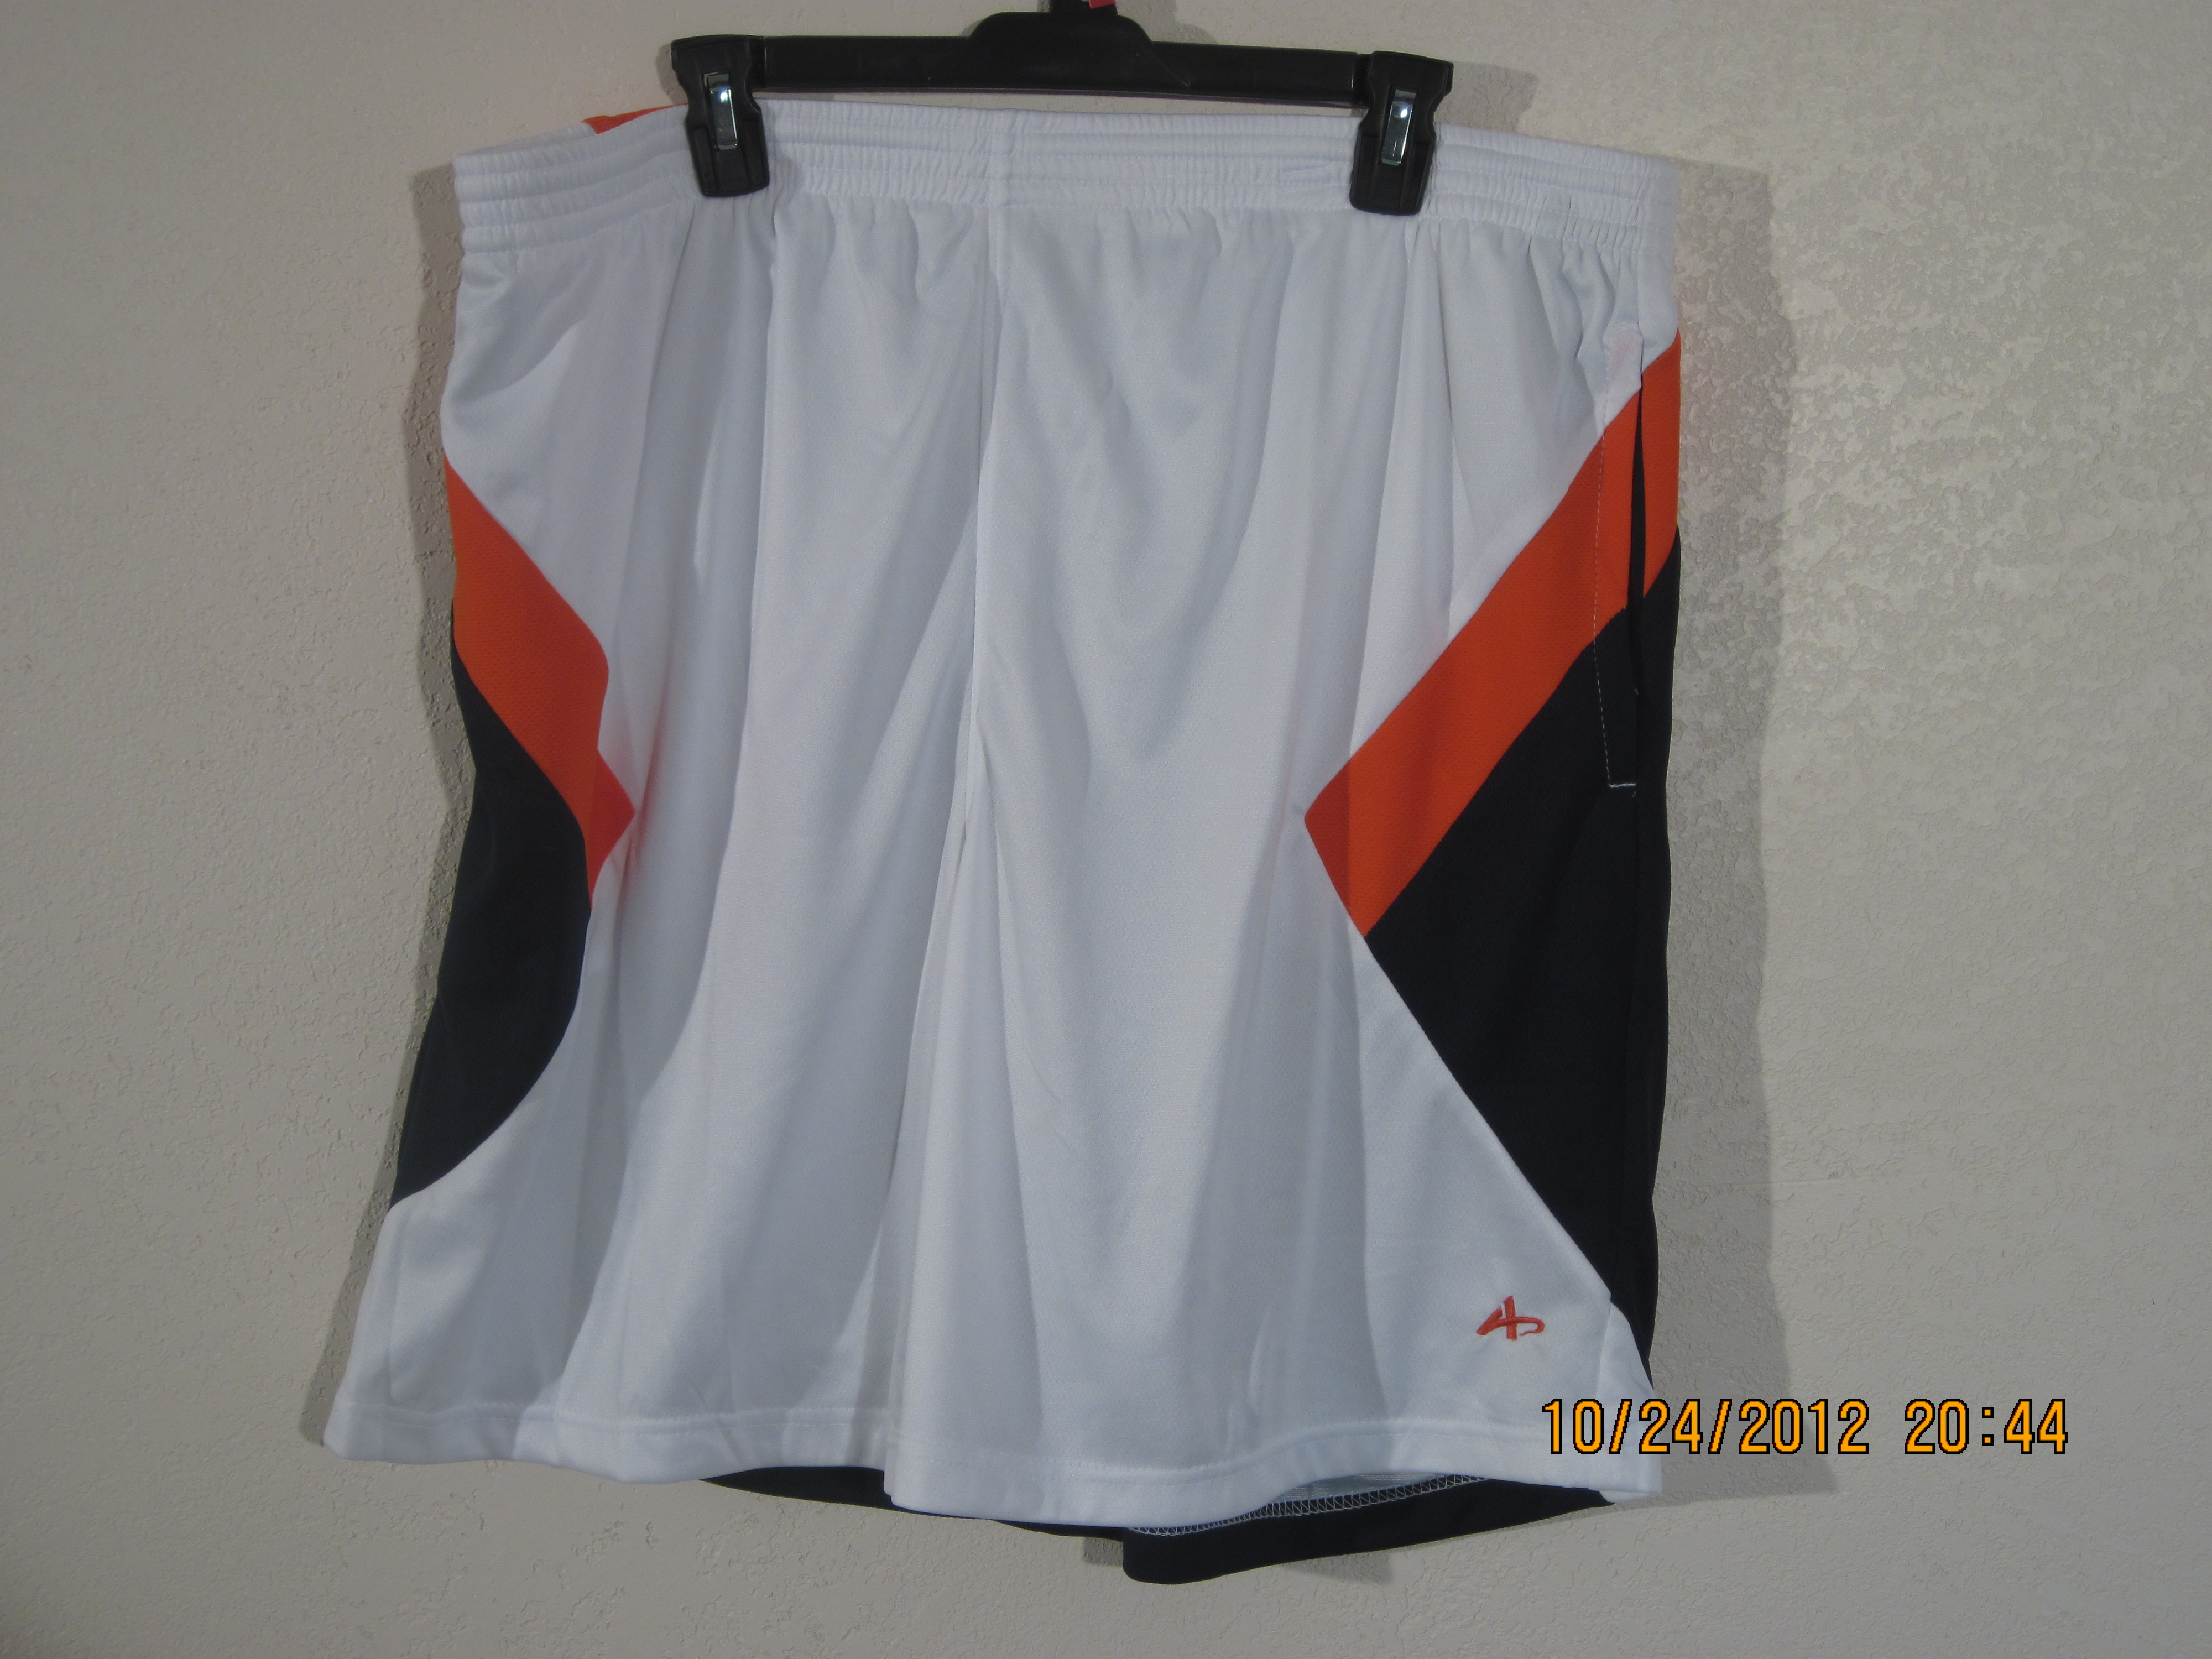 Athletech Sz XL Activewear Shorts(white,orange,navy blue)